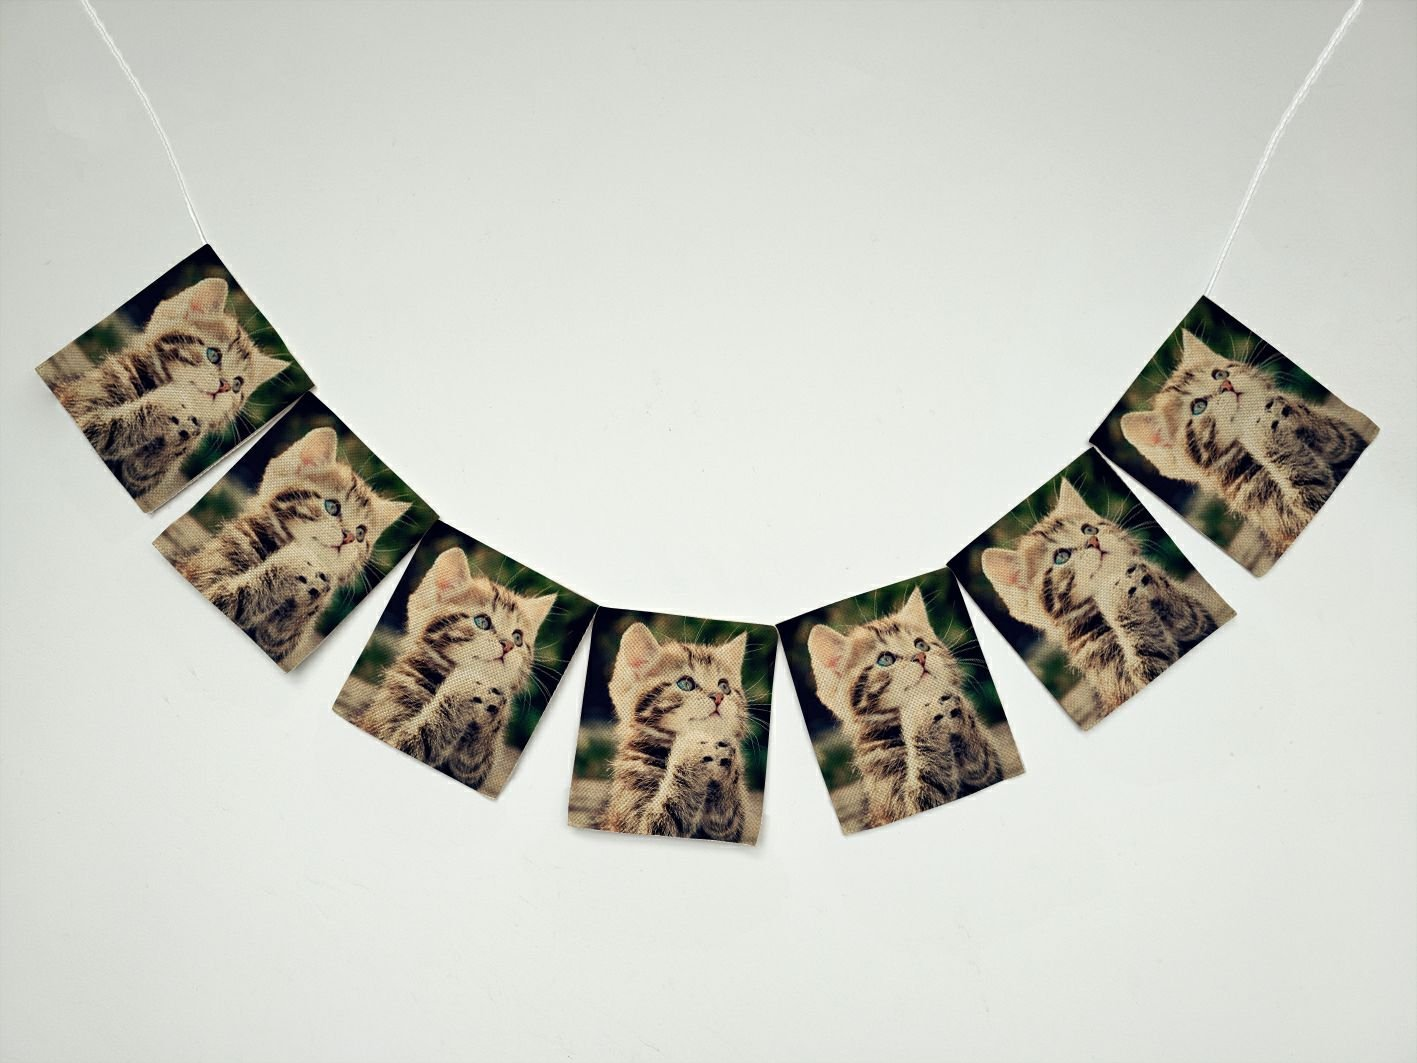 Animals Kitten Cat Banner Bunting Garland Flag Sign for Home Family Party Decoration